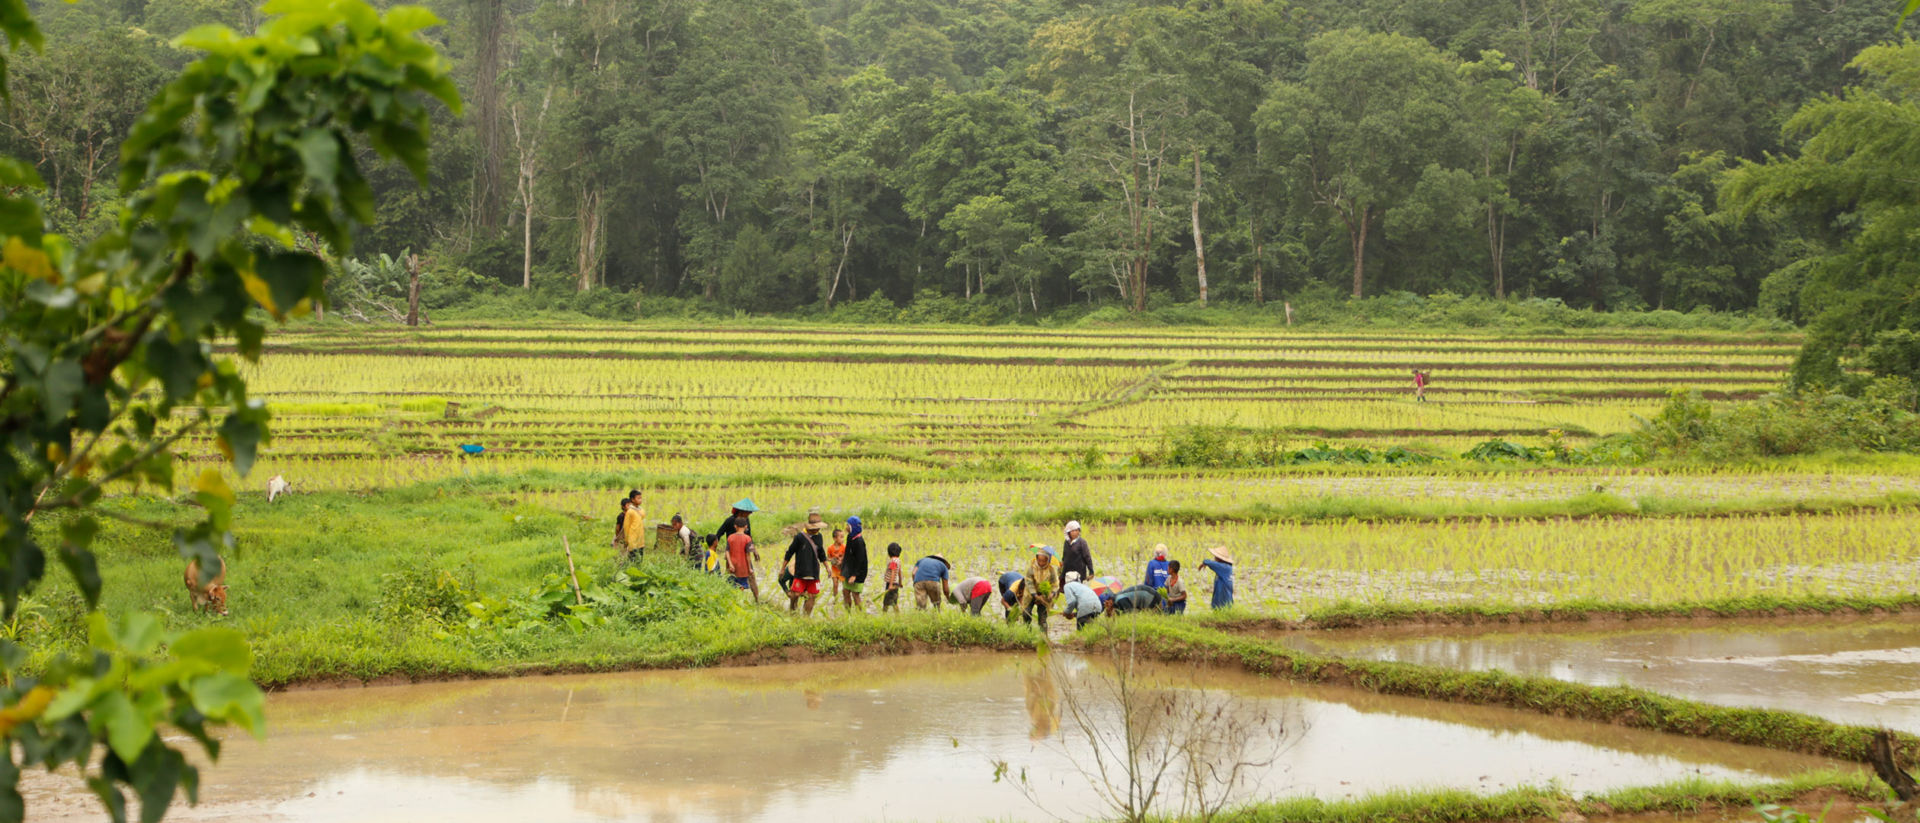 Farmers work the rice fields. Most are subsistence farmers and have little money to spend on their children's school costs or health needs.